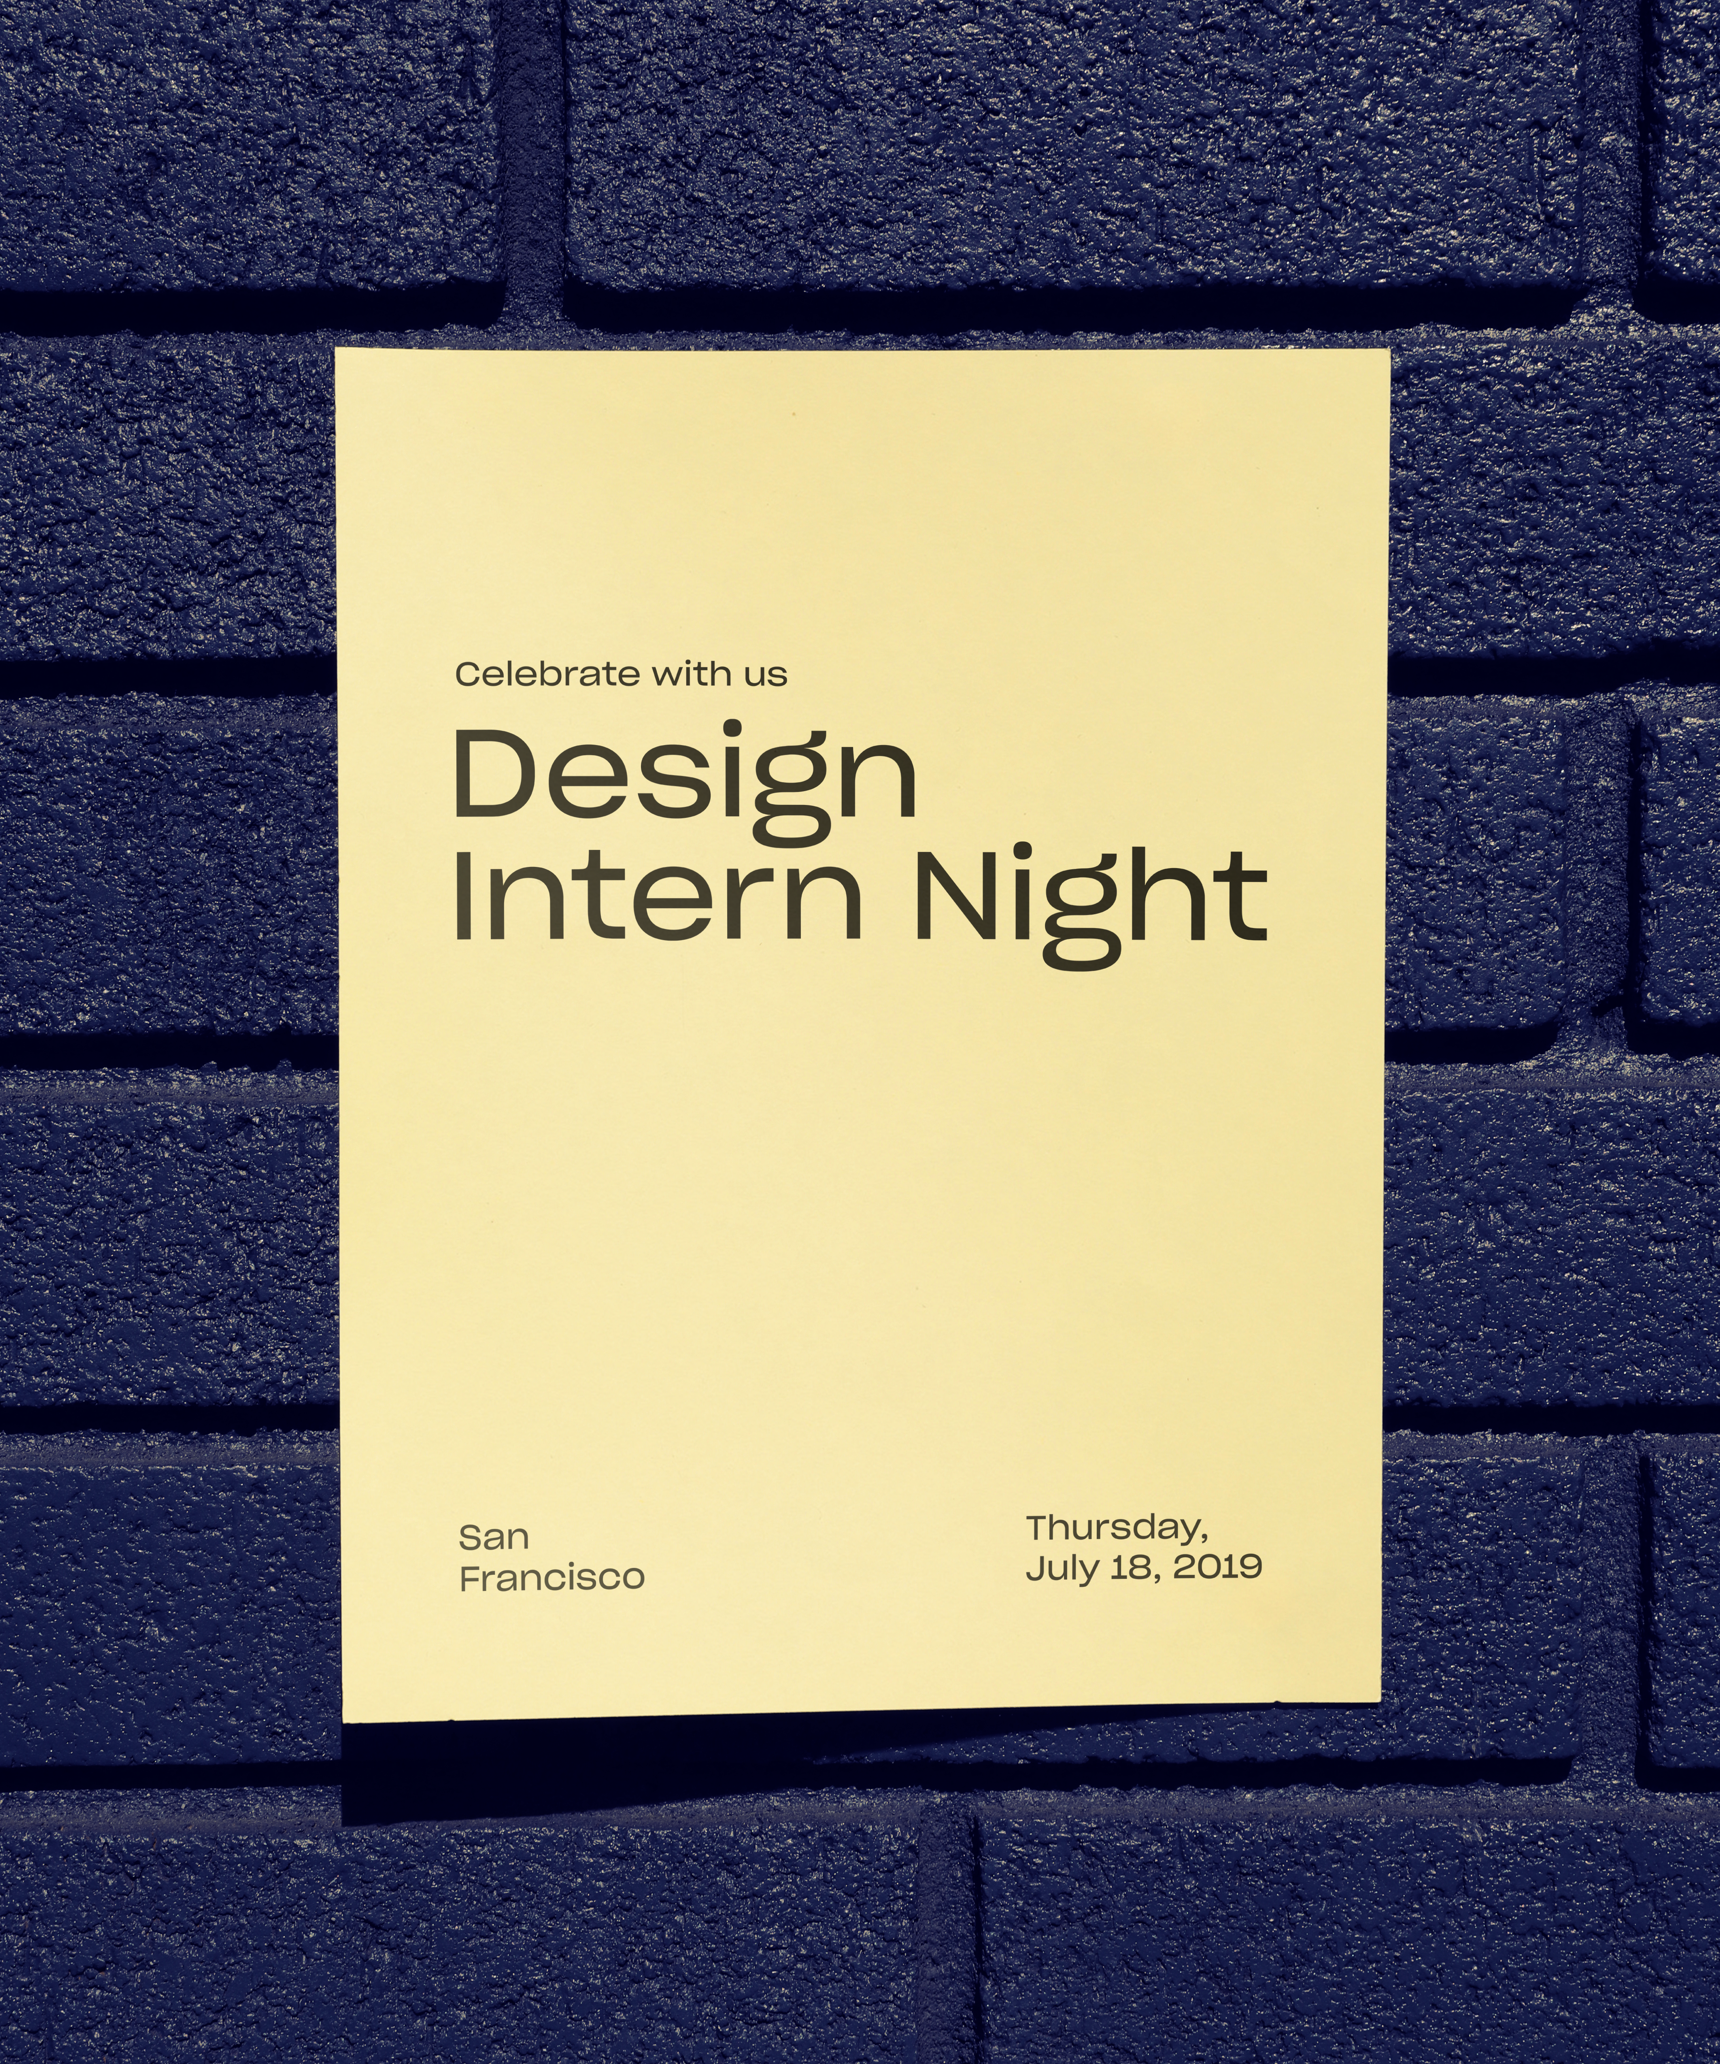 Design Intern Night